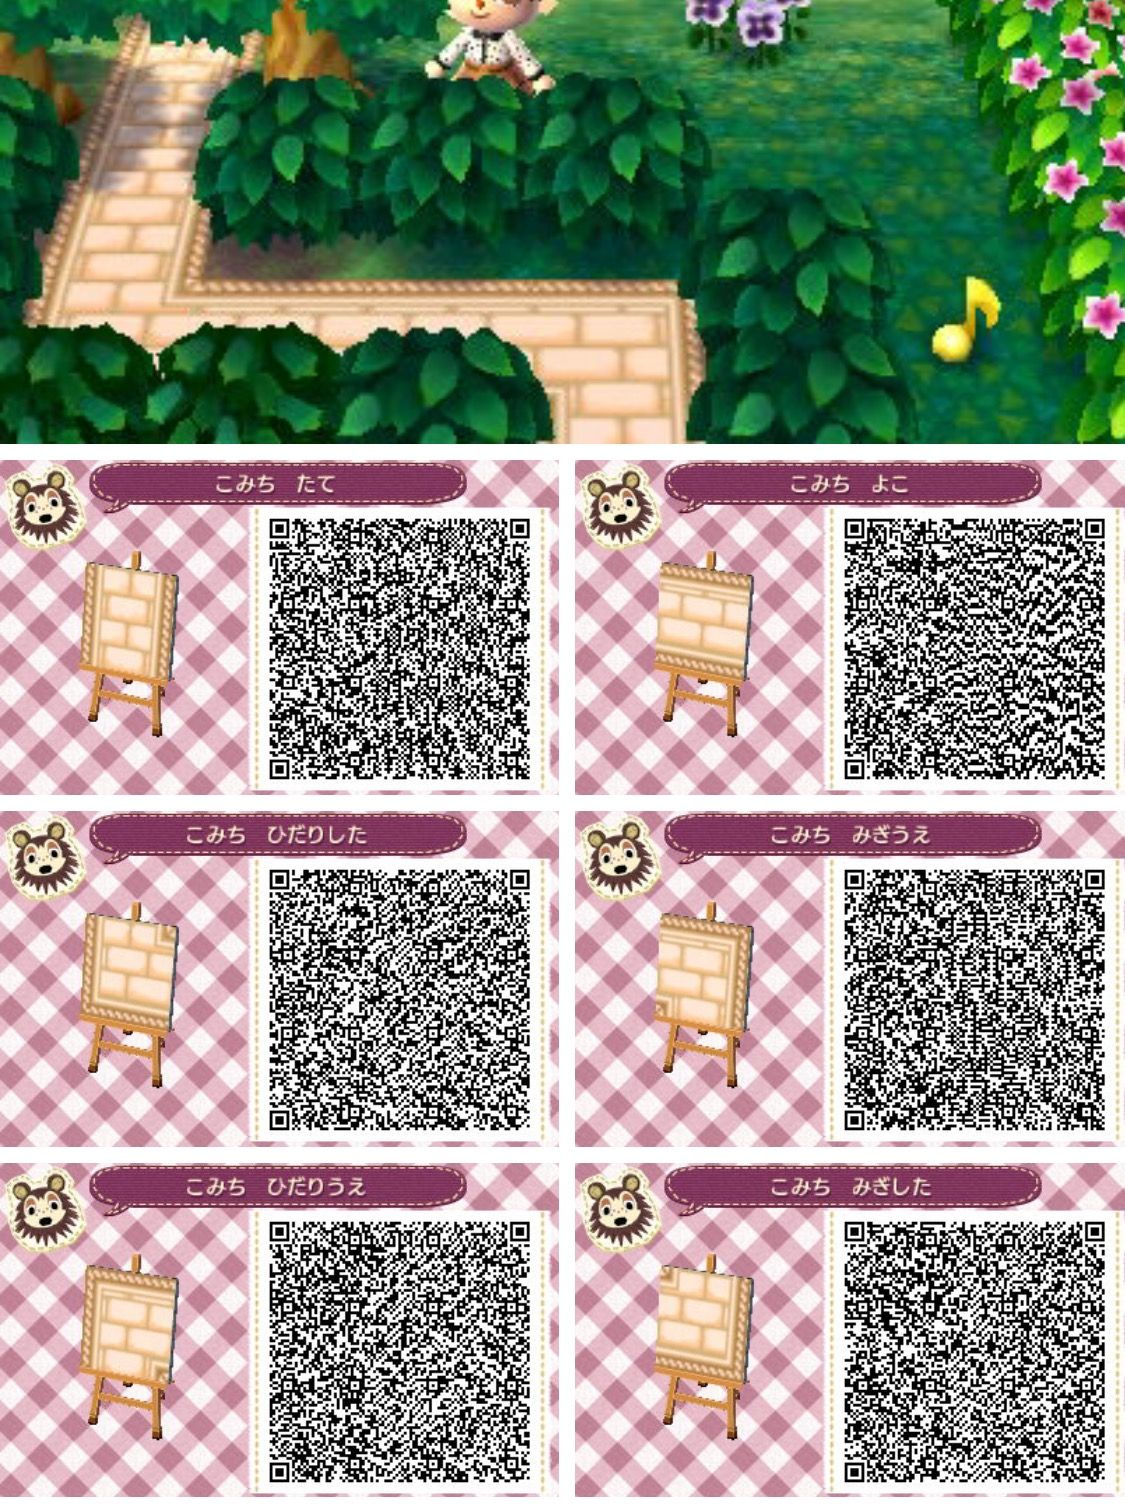 Beschte Favoriten Acnl Qr Code Paths Designs Animal